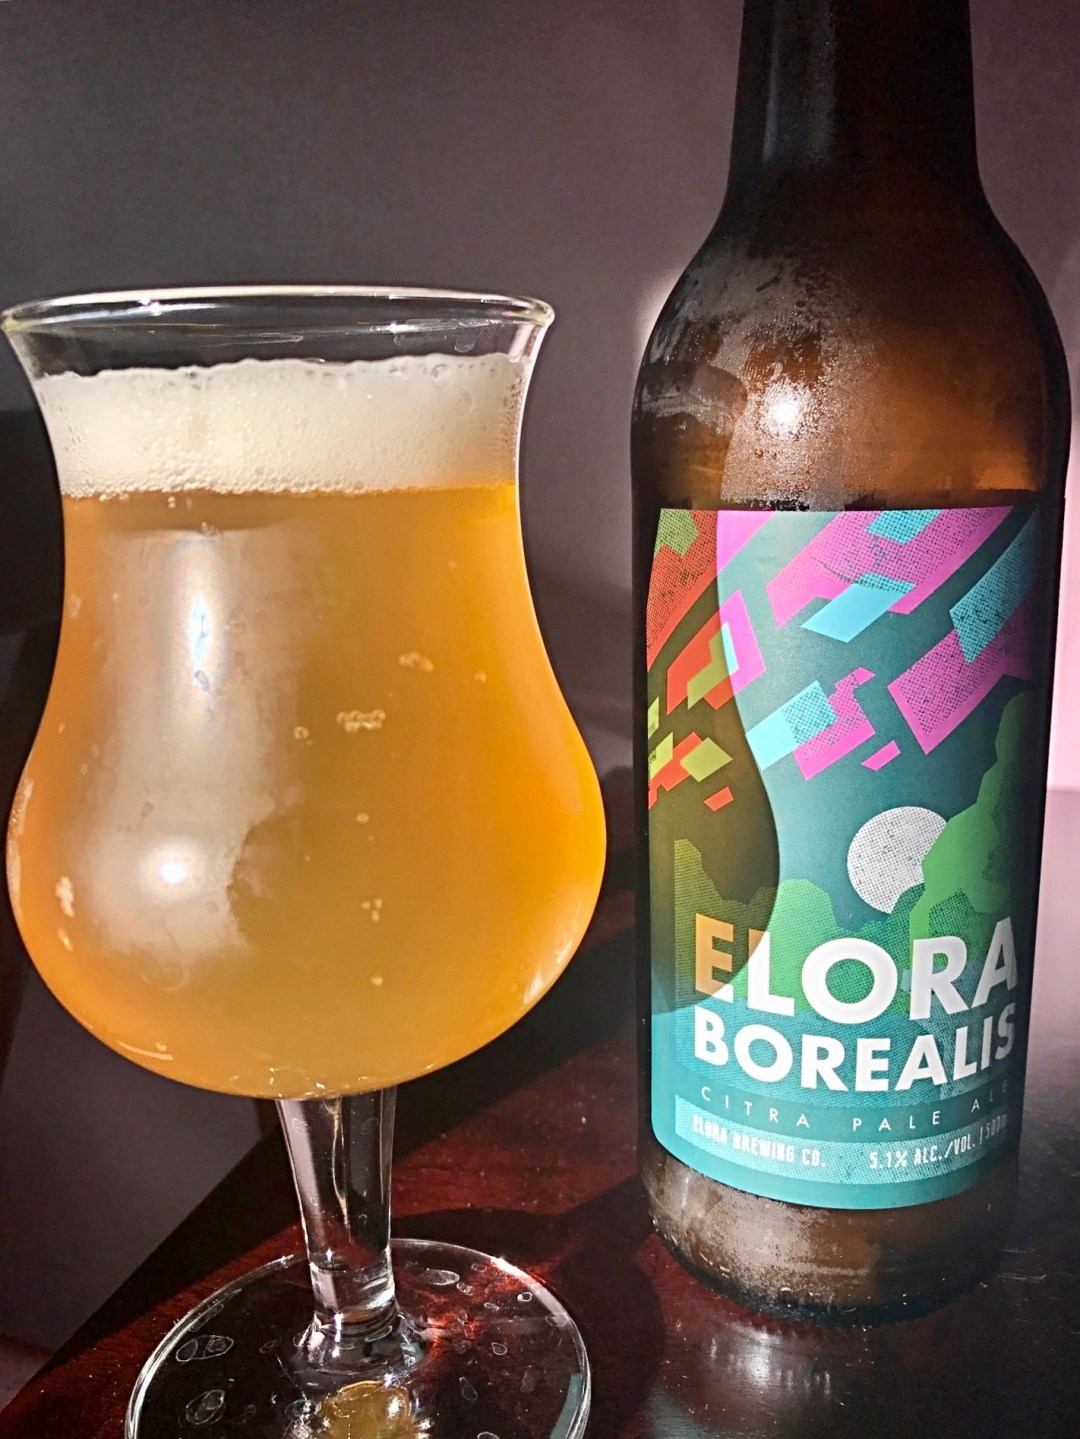 For a small brewery, an appealing flagship offering is essential. In Elora Borealis Citra Pale Ale, the Elora Brewing Company has a citrus-tinged gold mine. Click through for the full review.